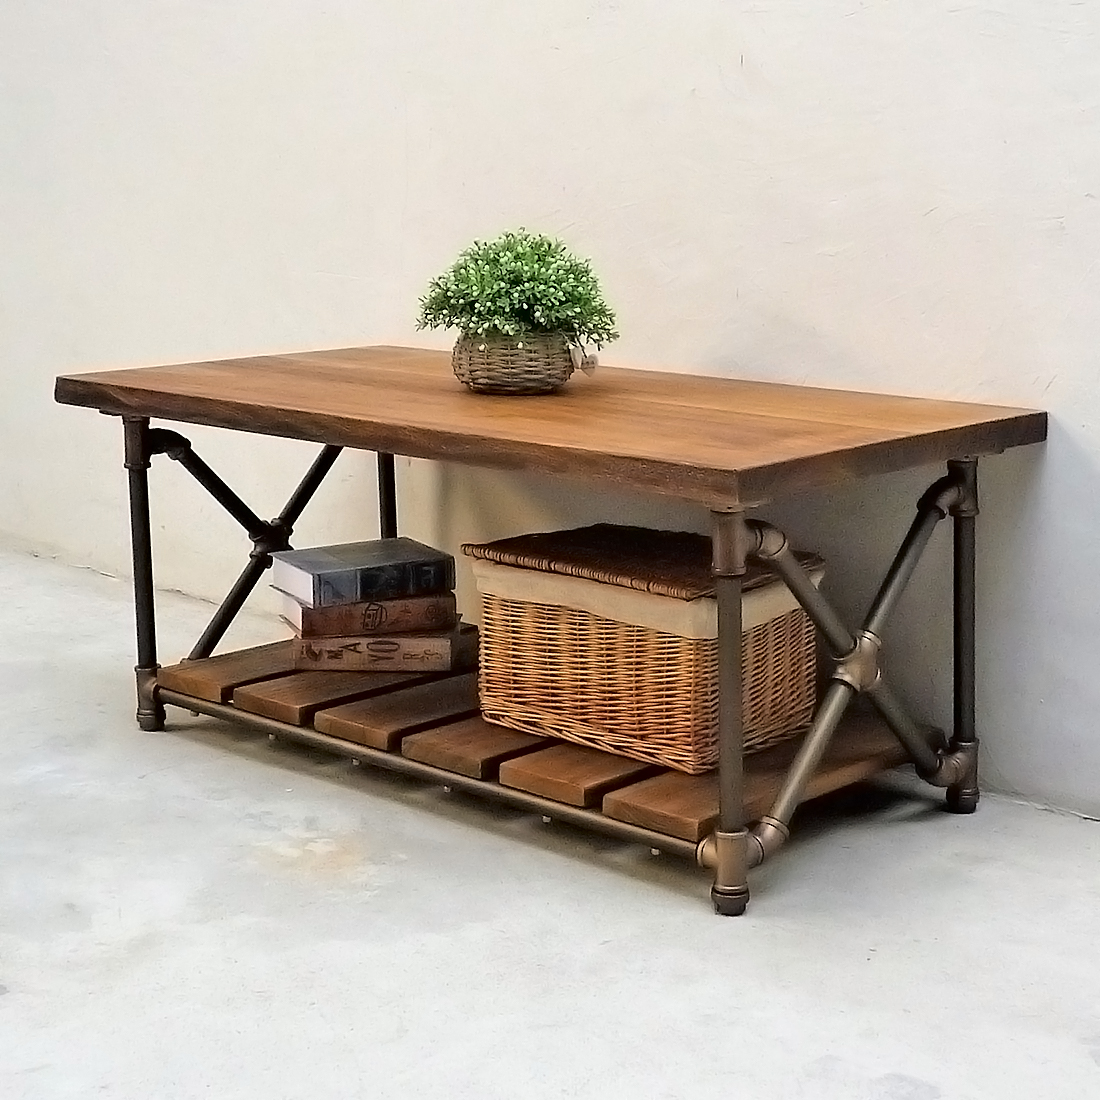 Houston Industrial Chic Coffee Table CTX1 BZBZBR 5